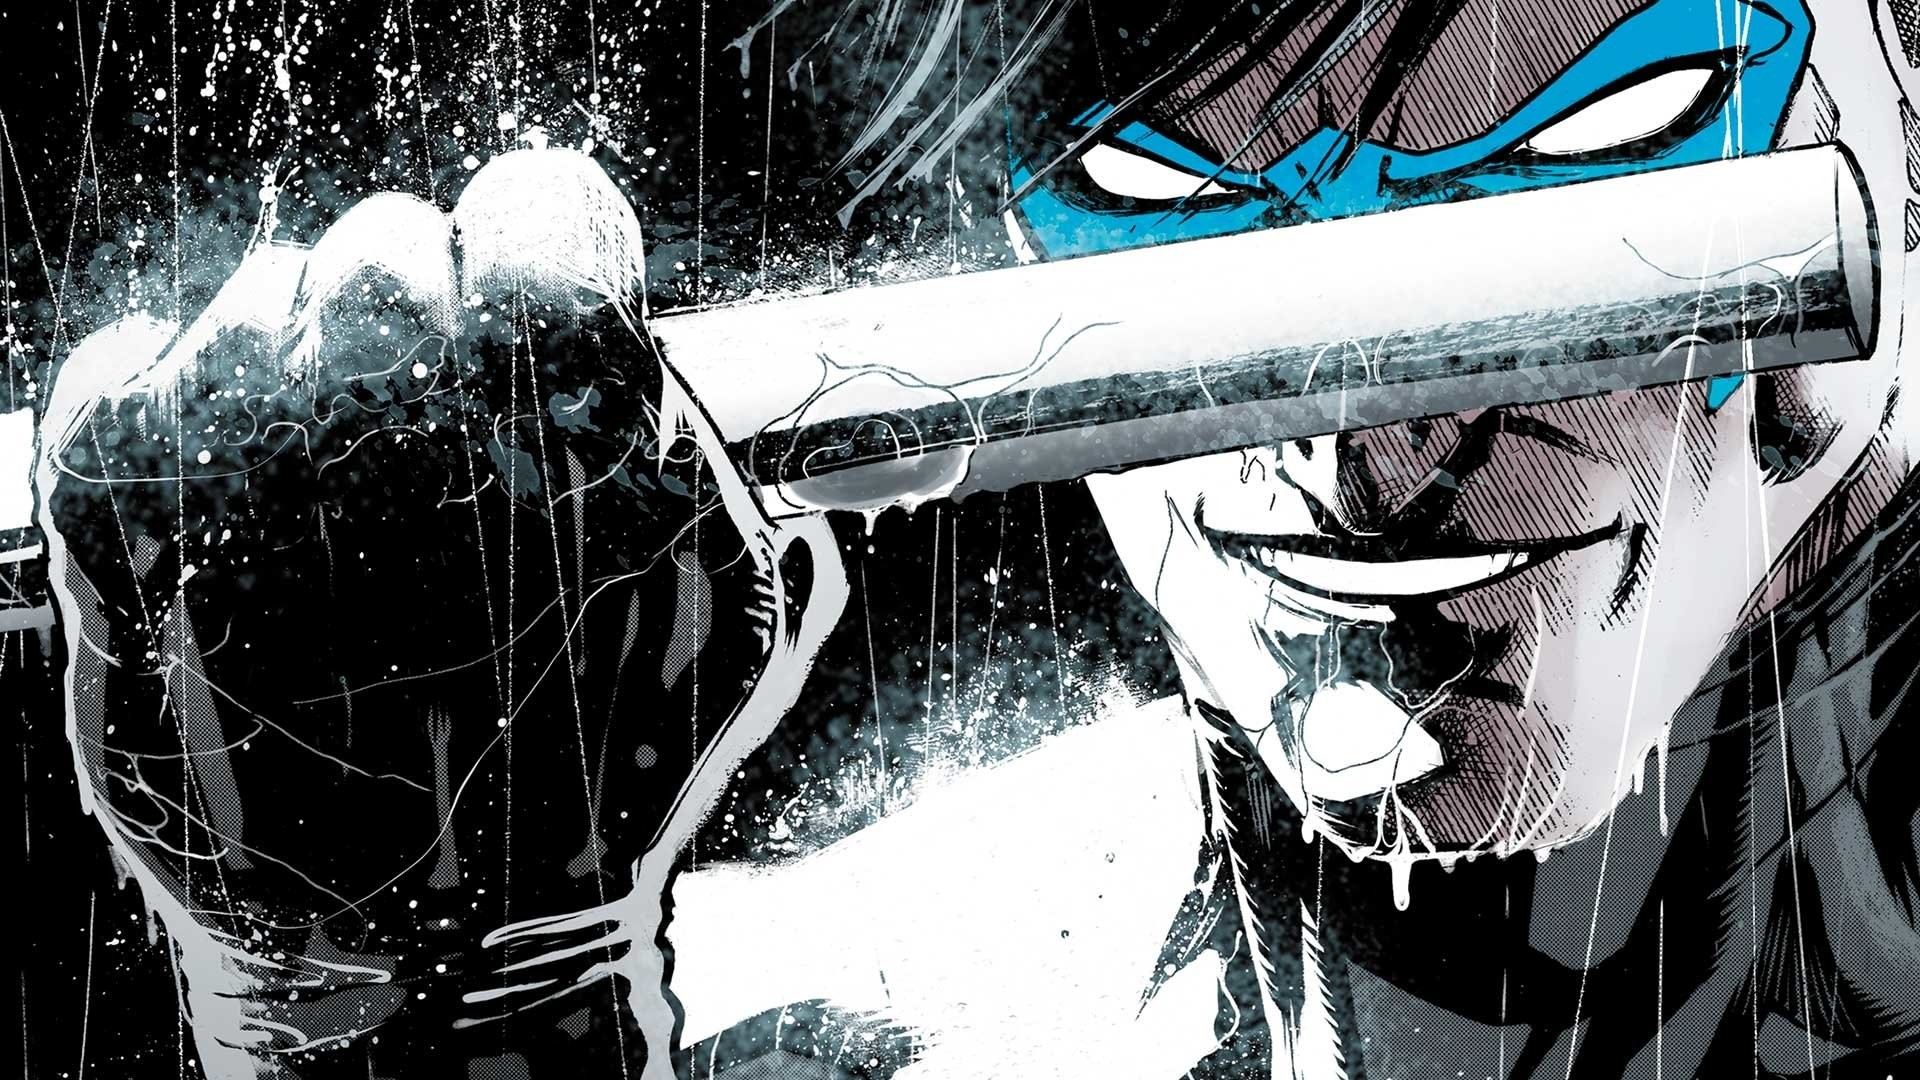 Res: 1920x1080, HD Wallpaper | Background Image ID:730701.  Comics Nightwing